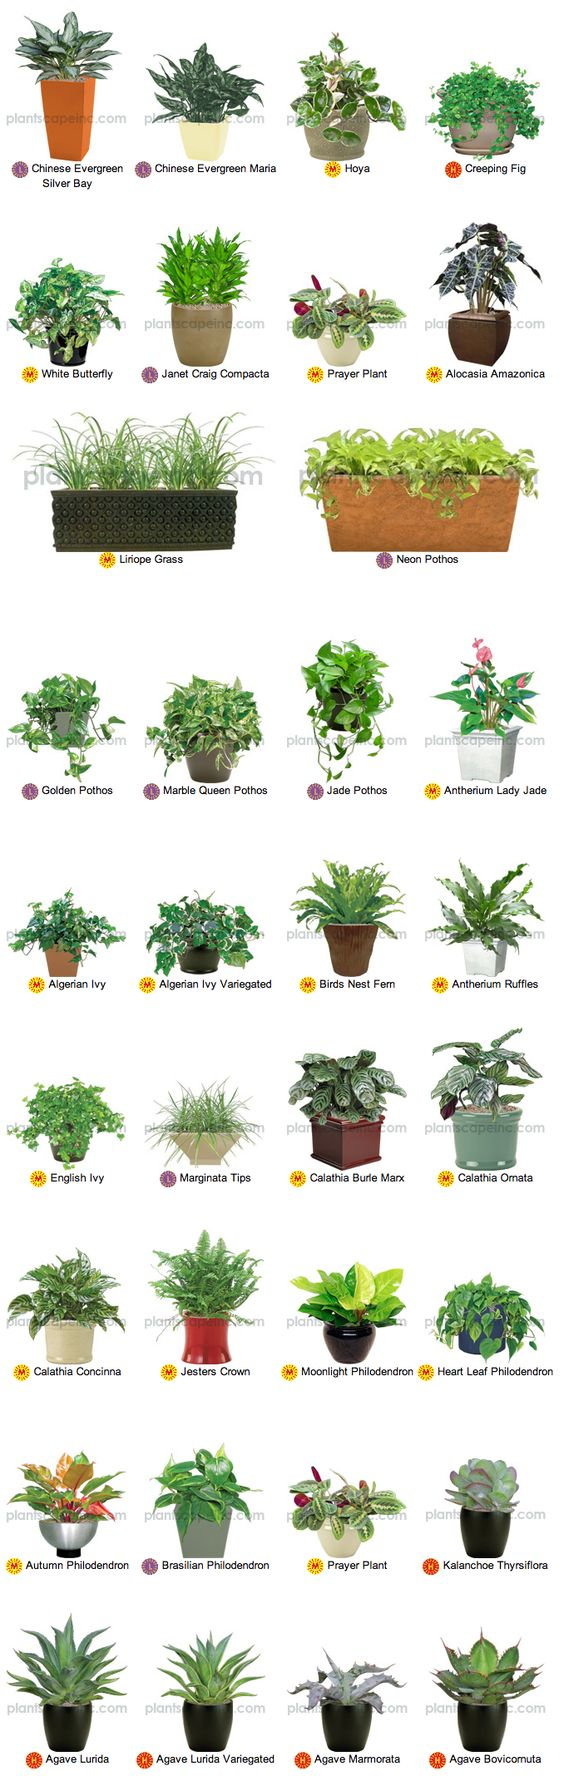 Desktop office plants by plantscape inc gardening Best small office plants